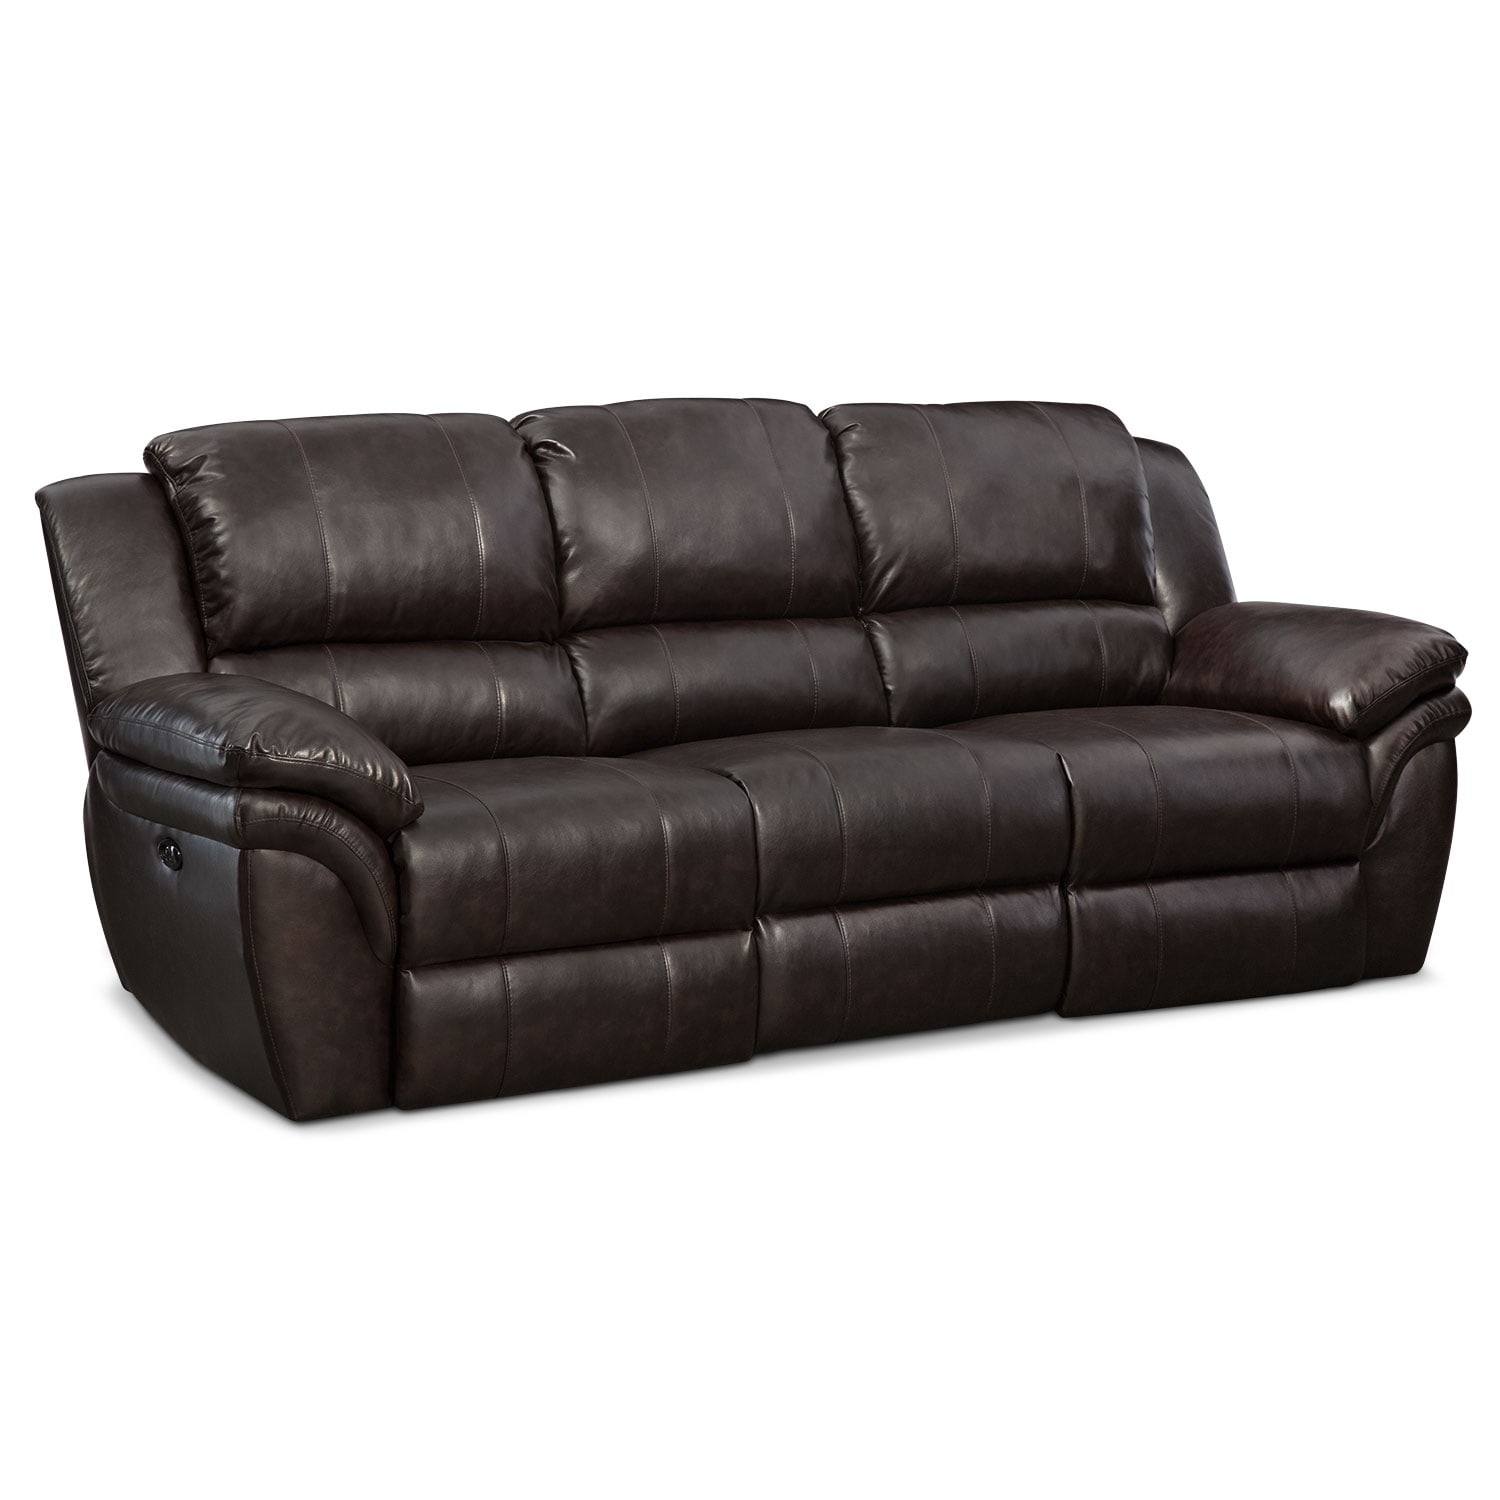 Aldo Power Reclining Sofa   Brown By Factory Outlet